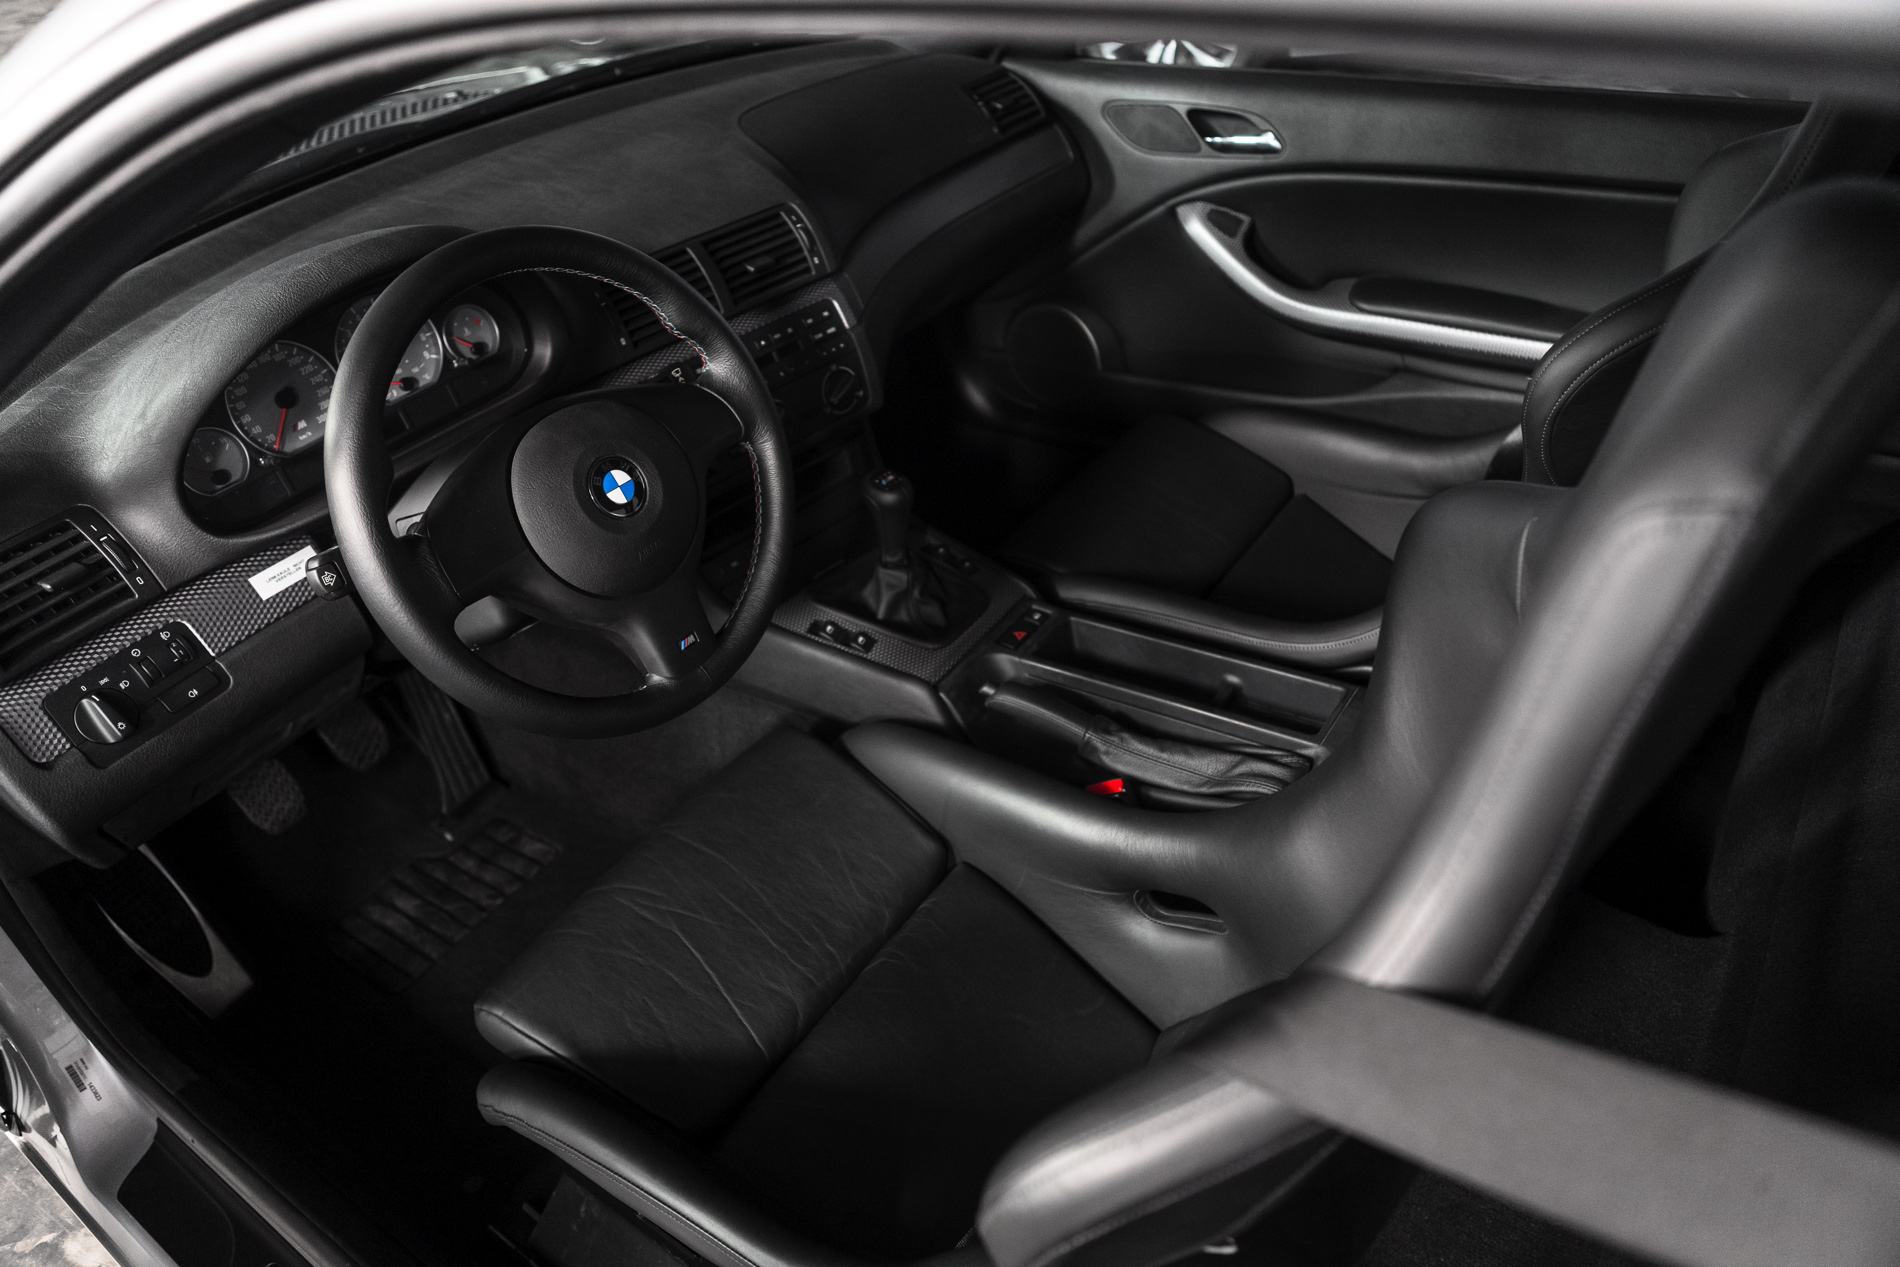 Bmw E46 M3 Gtr One Of The Most Limited Production Models Ever 2001 740i Engine Diagram Road Version 1900x1200 Images 13